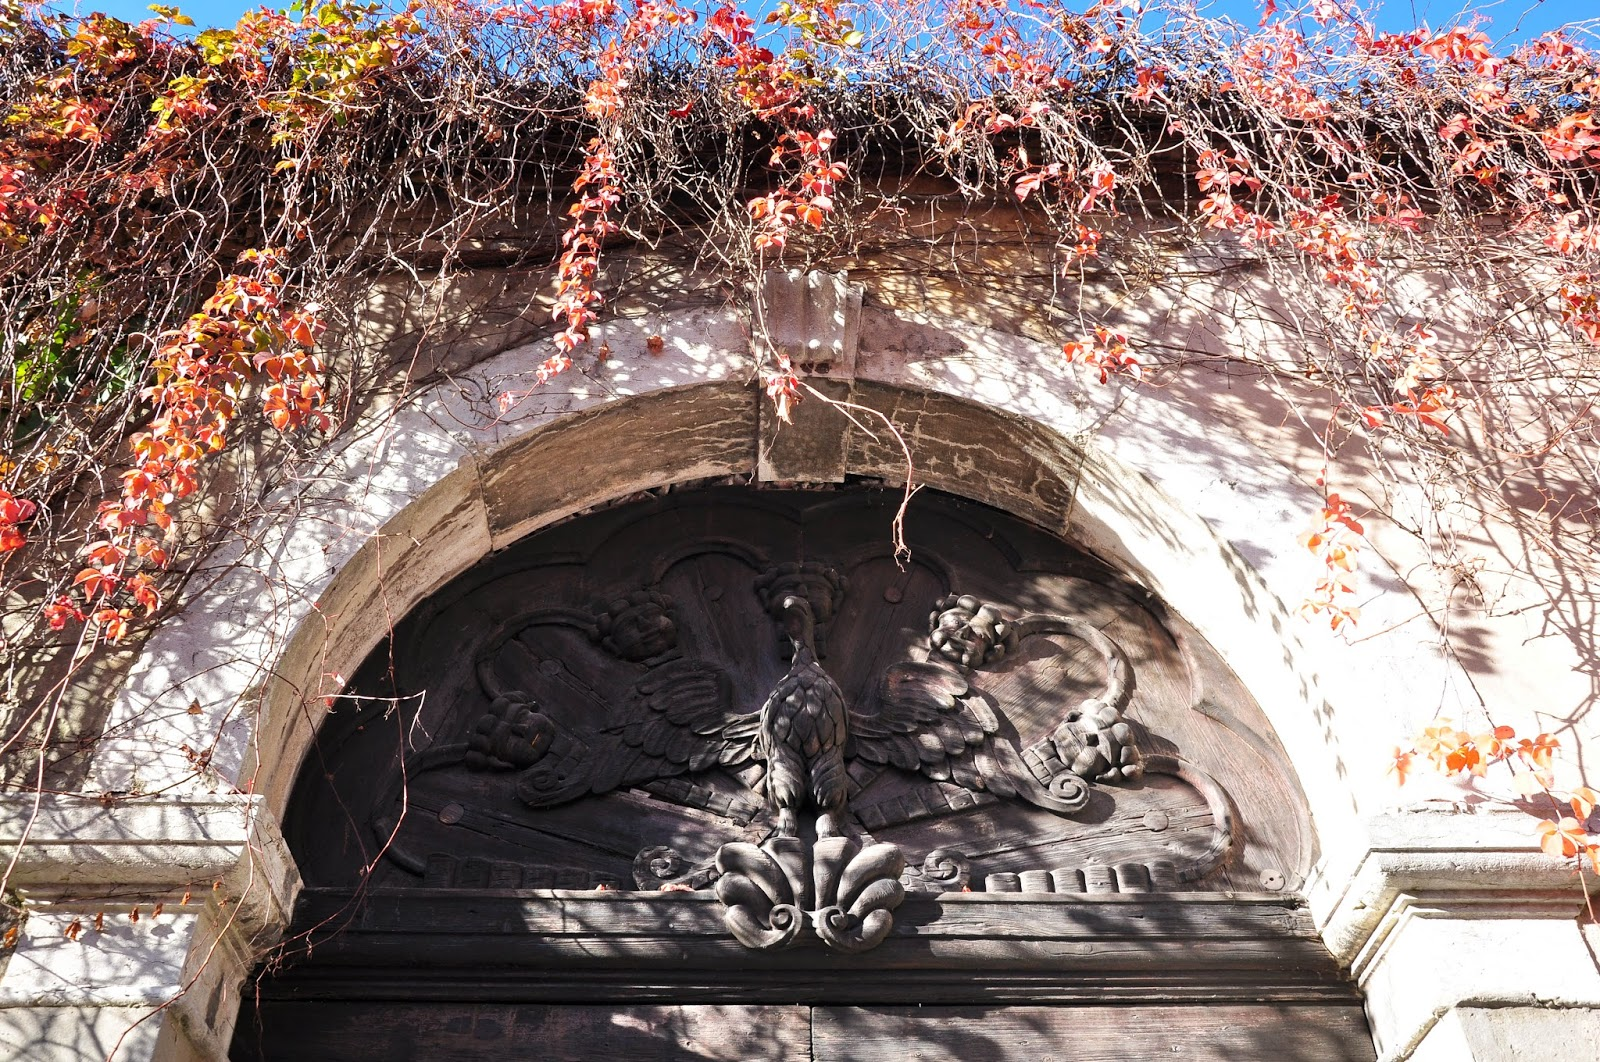 Red ivy covering a front gate, Feltre, Veneto, Italy